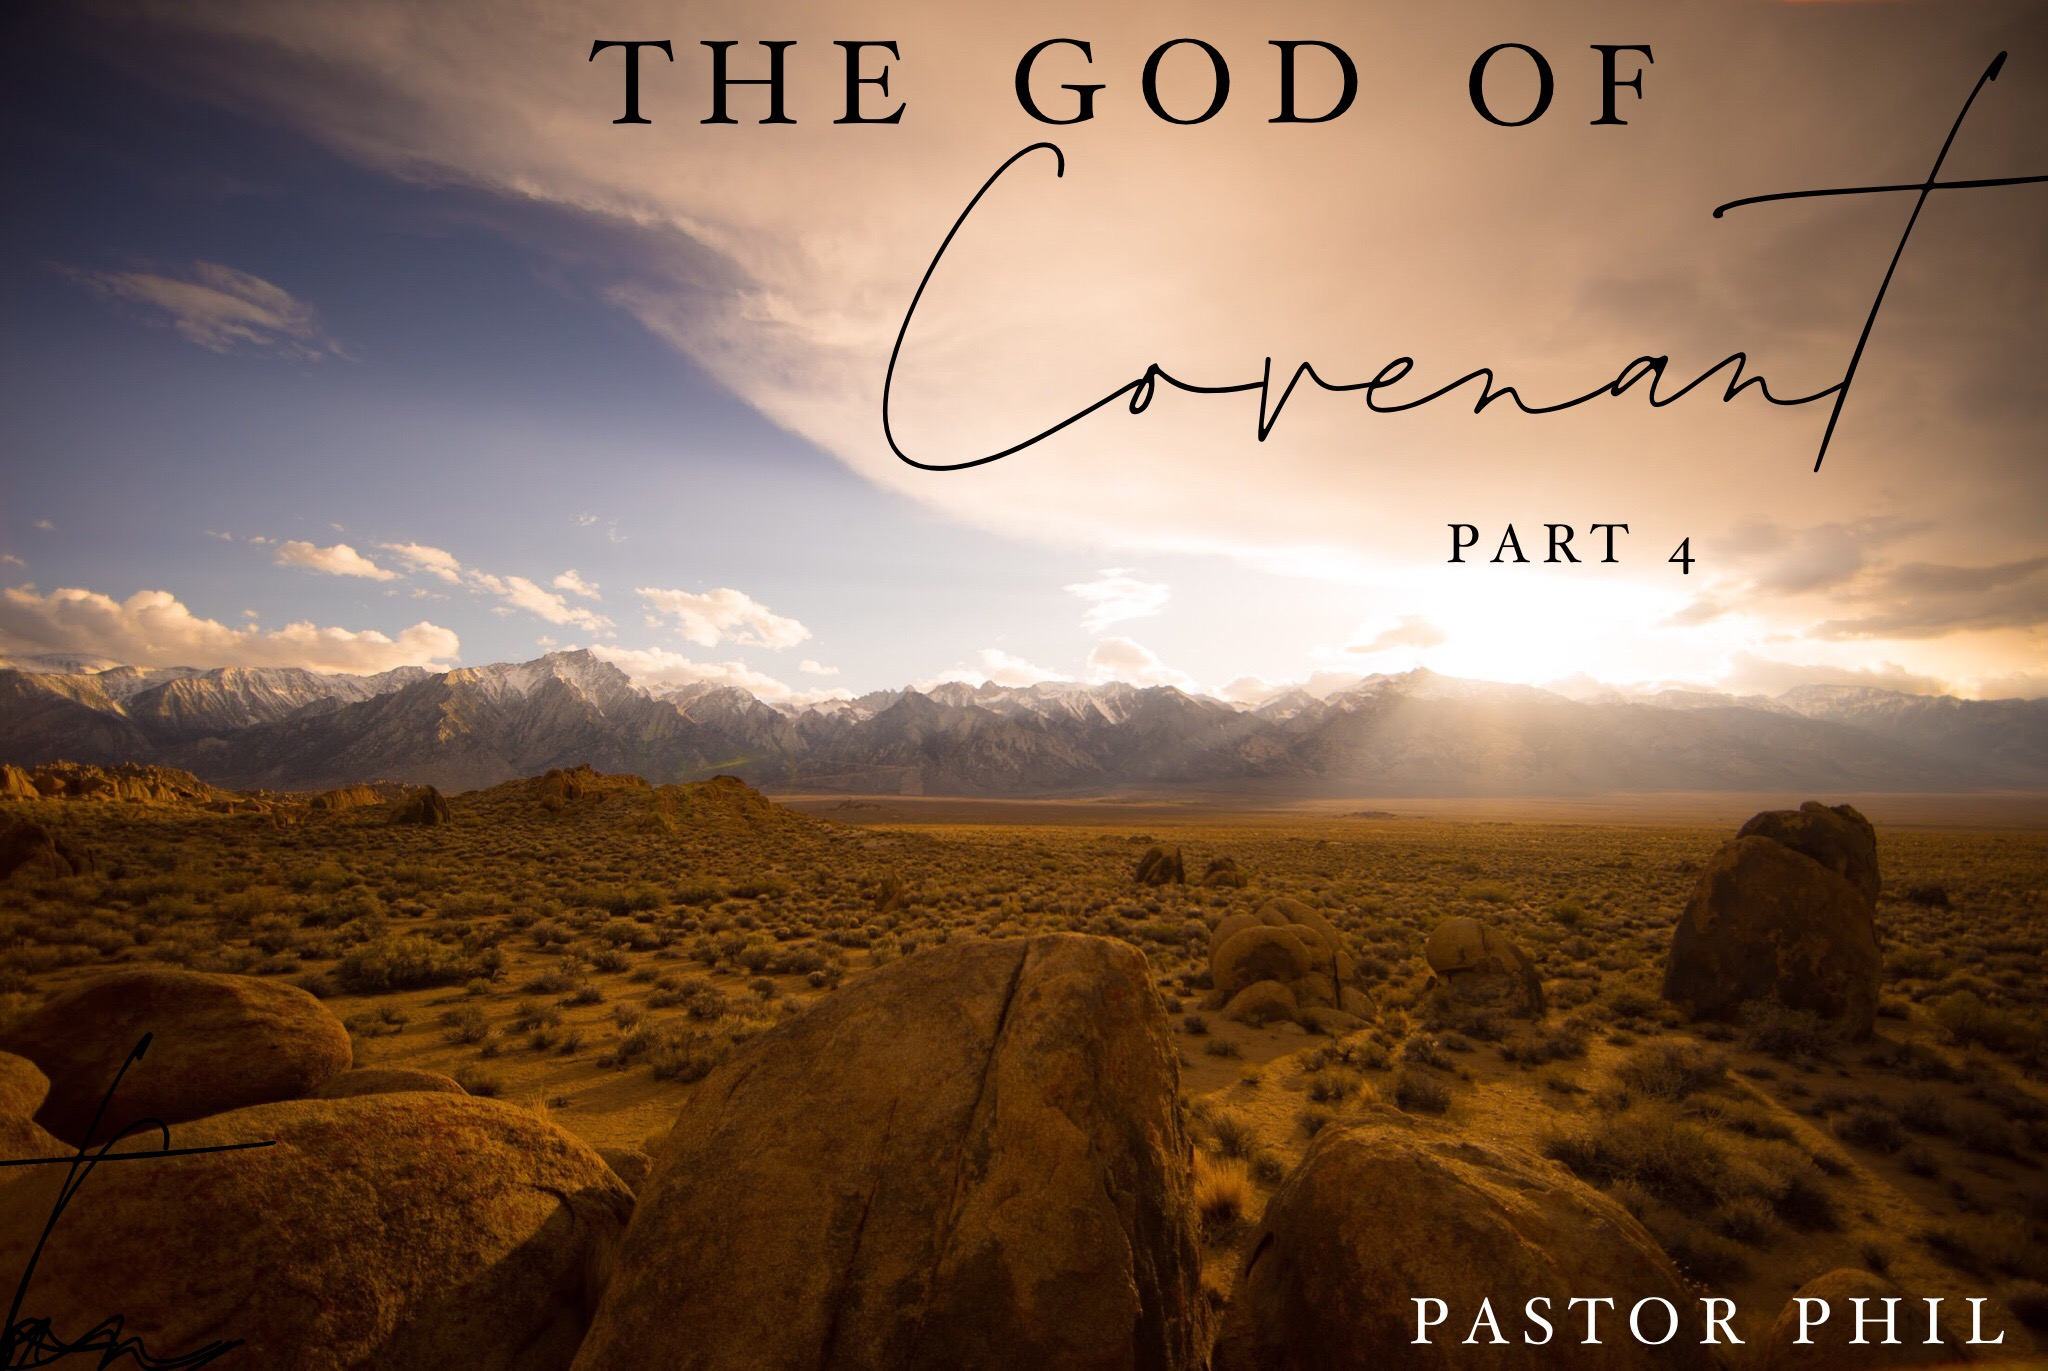 The God of Covenant Pt 4